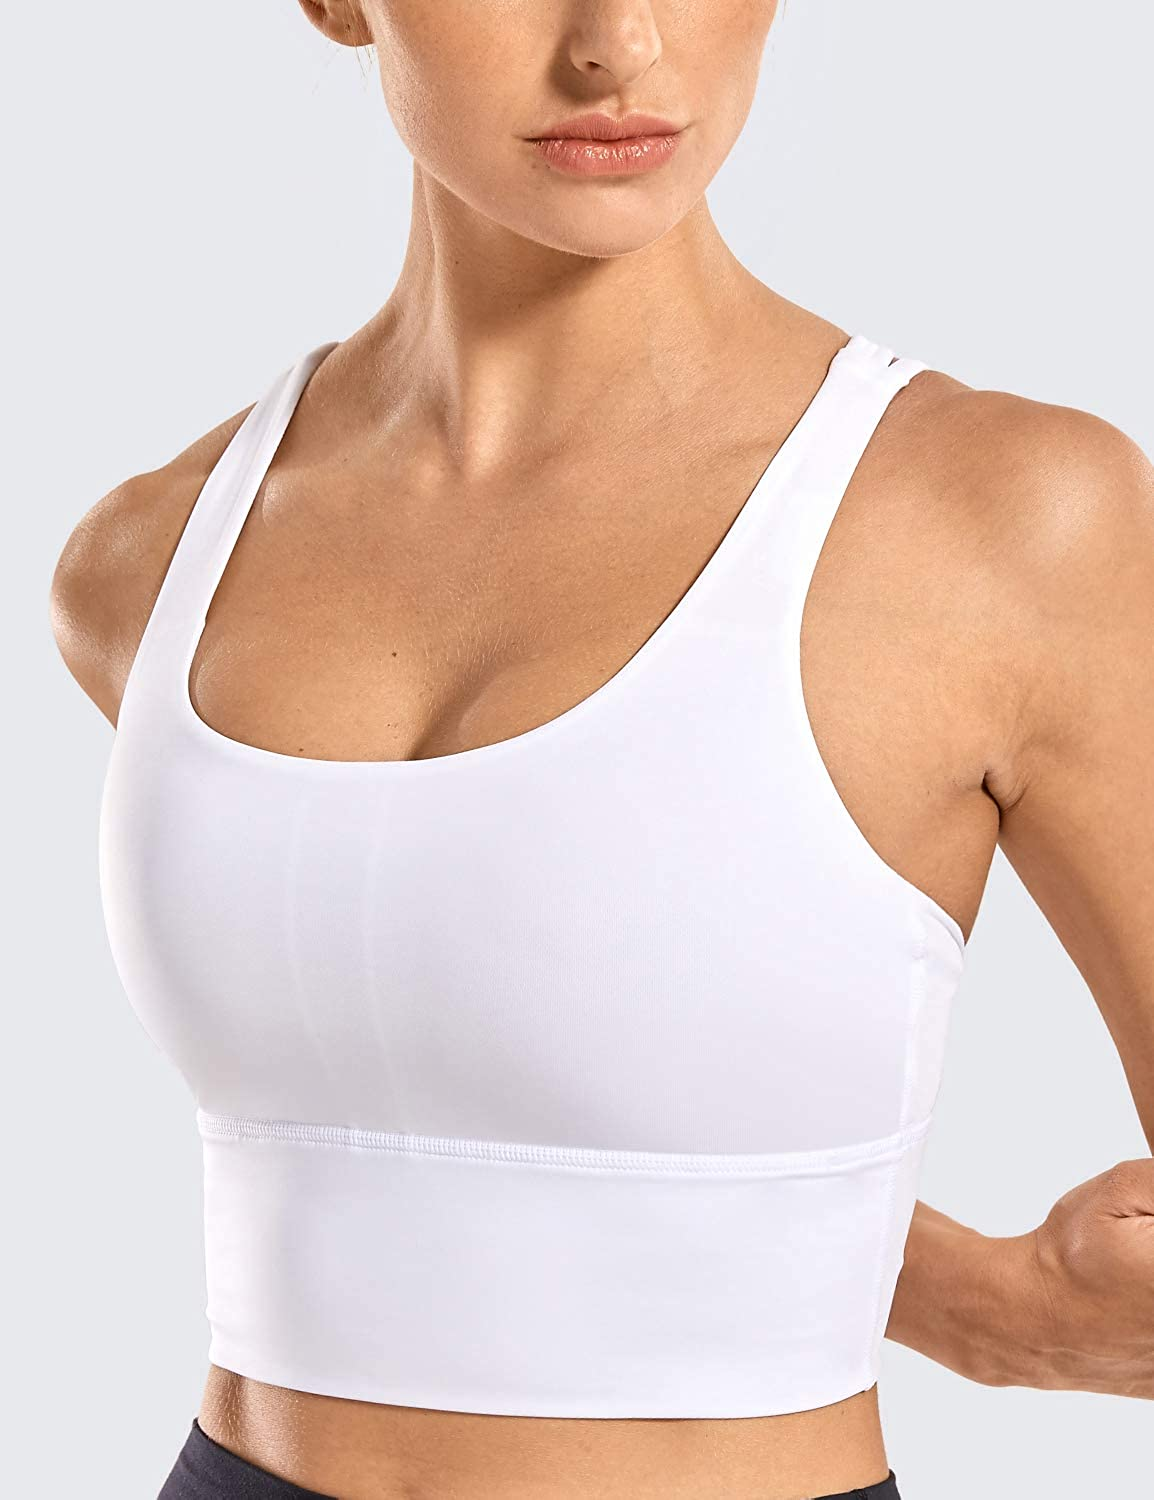 CRZ YOGA Strappy Sports Bras for Women Longline Wirefree Padded Medium Support Yoga Bra Top at  Women's Clothing store